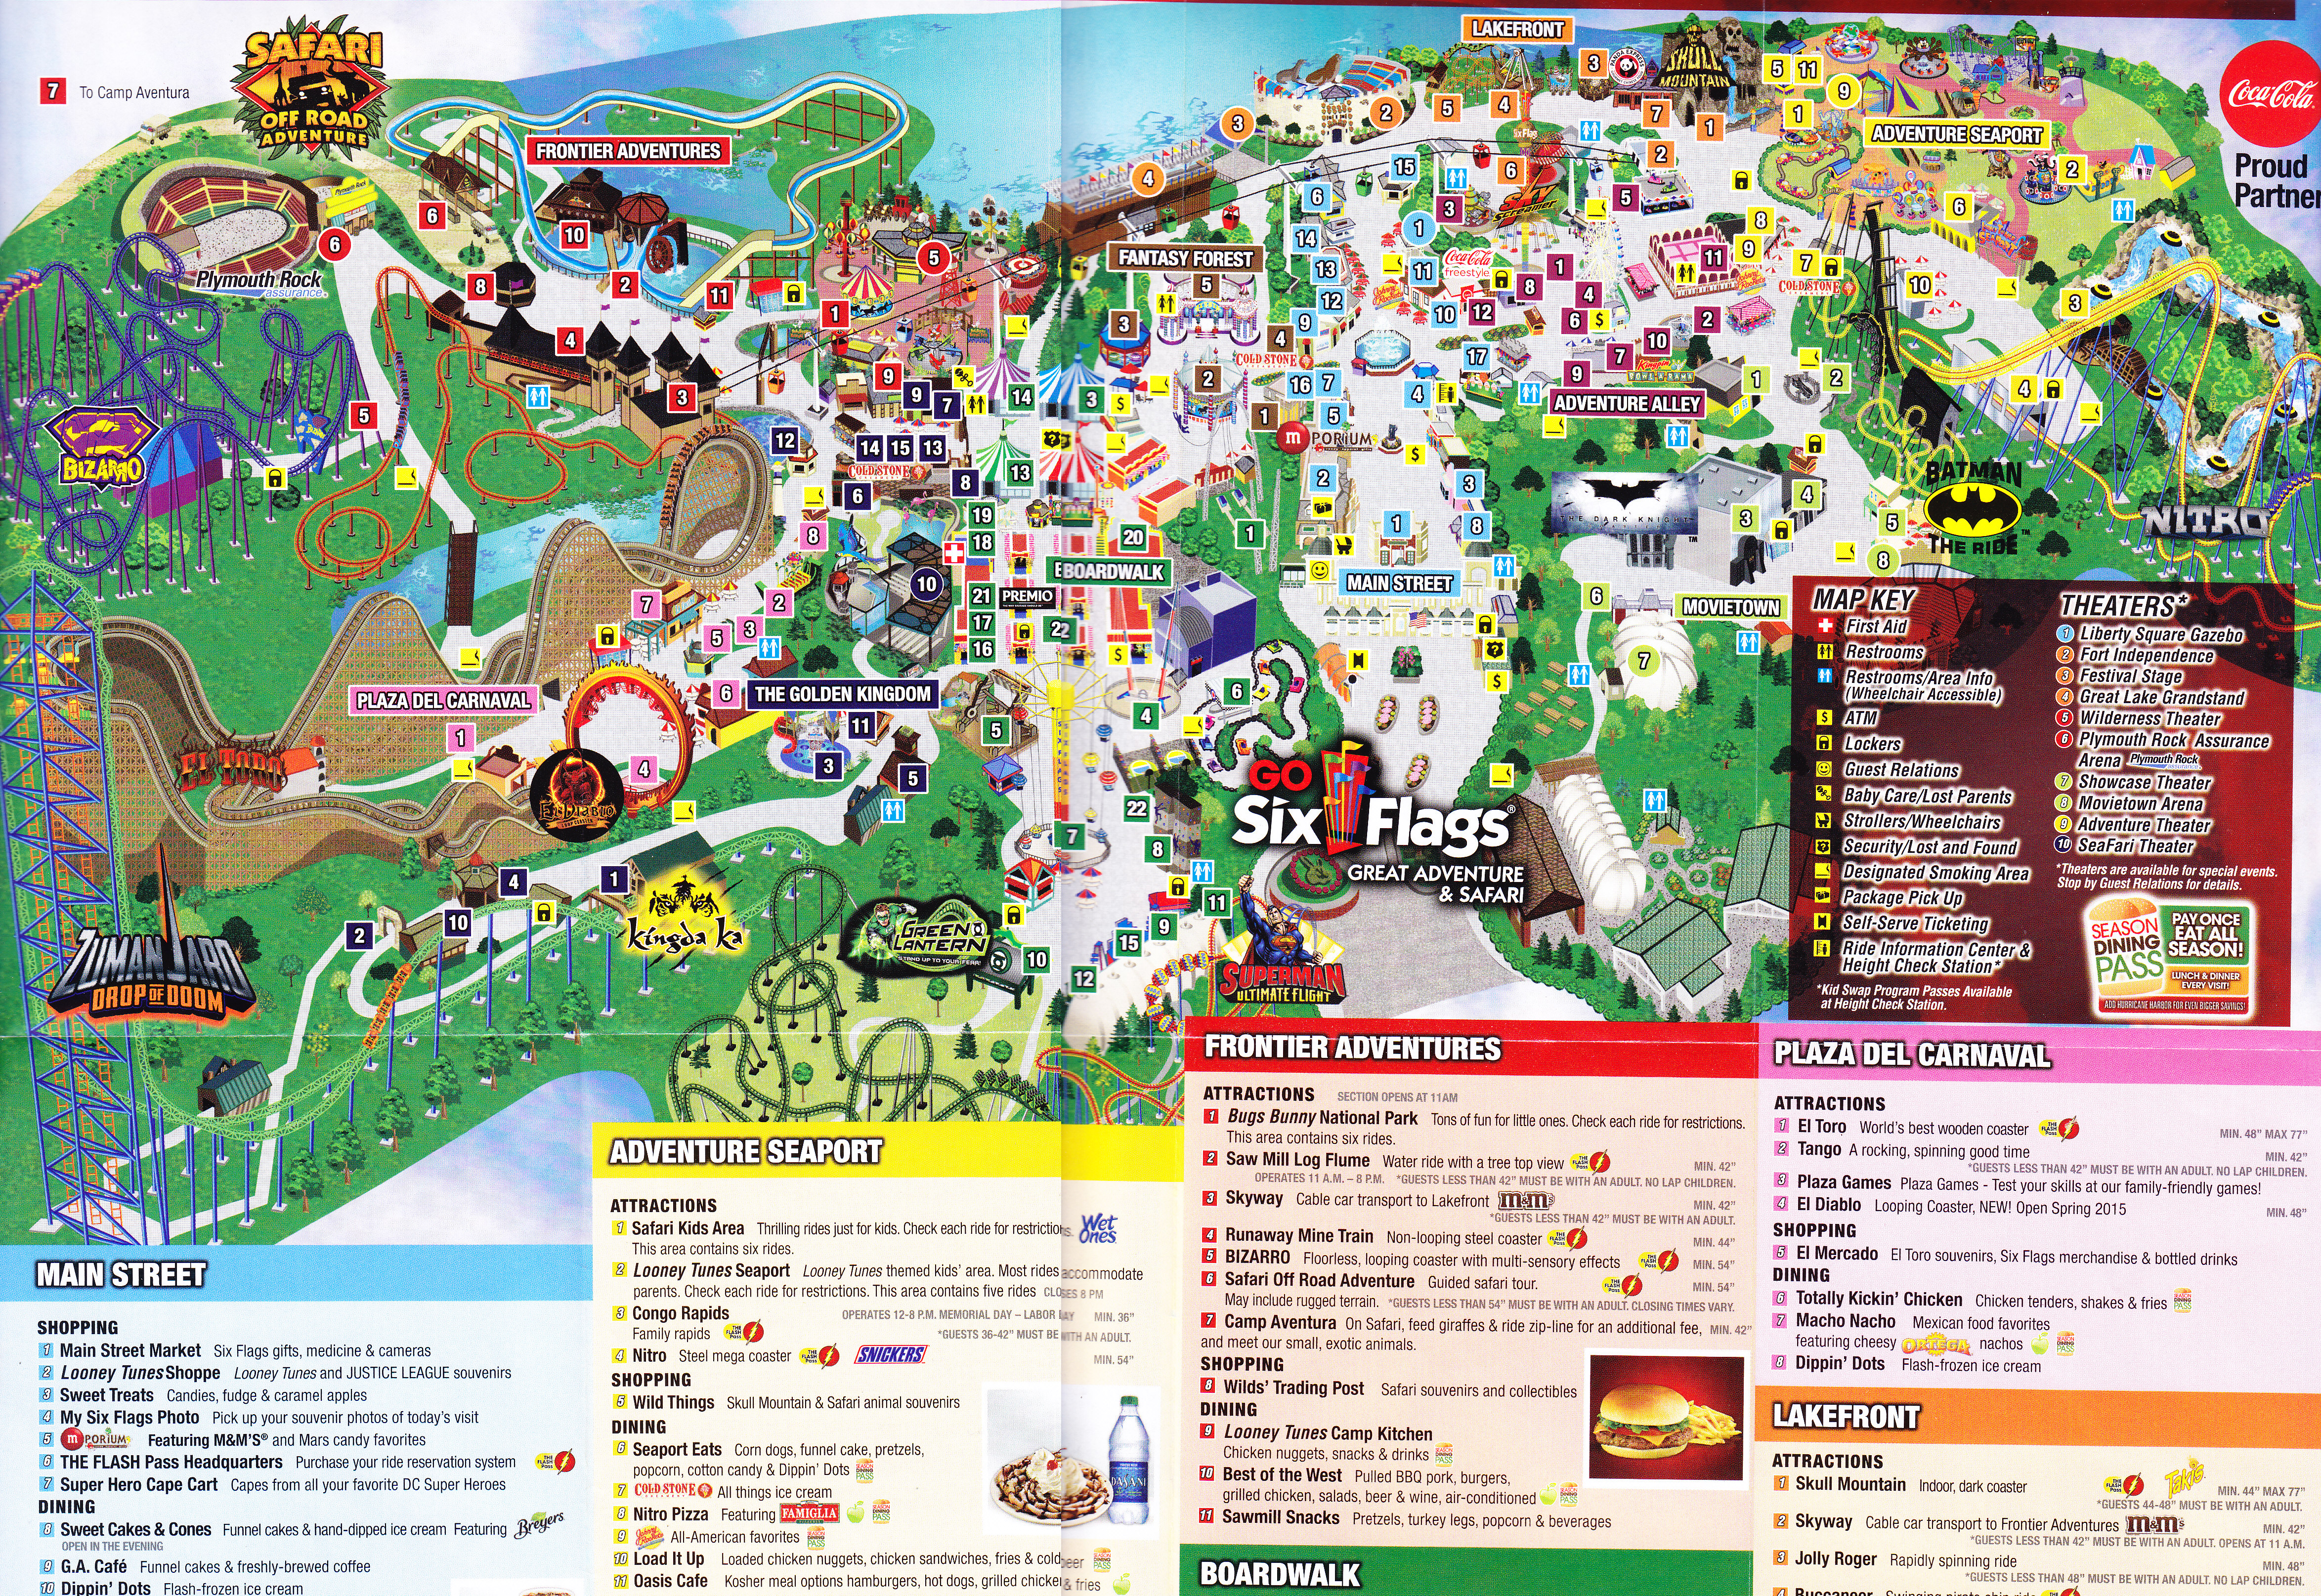 6 Flags Map County Map Of Arizona County Map Michigan